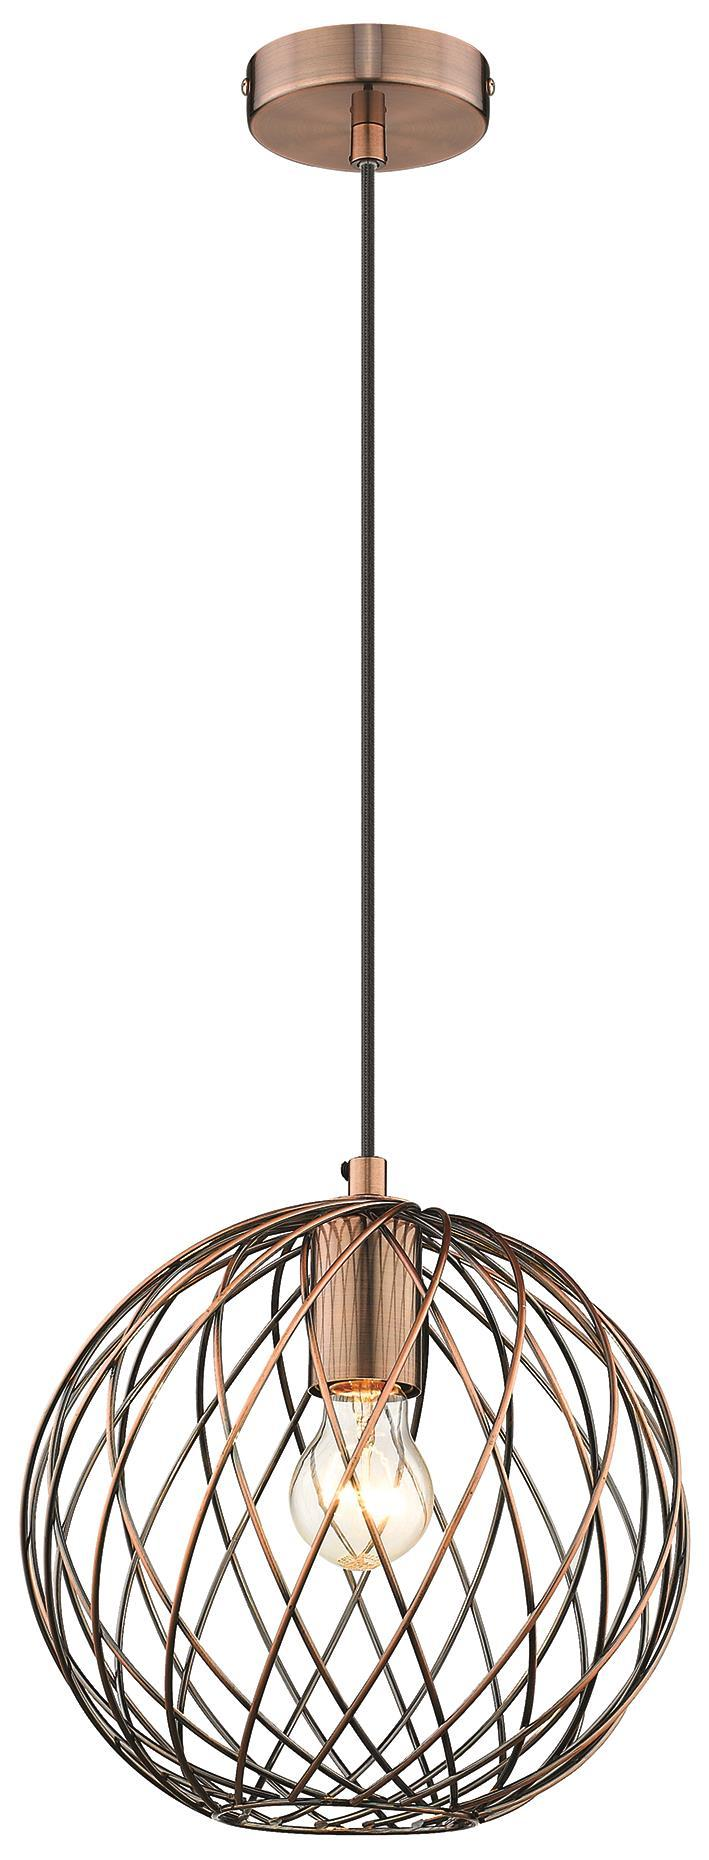 SND Lighting SND251 Martin Single Pendant Antique Copper - SND Electrical Ltd